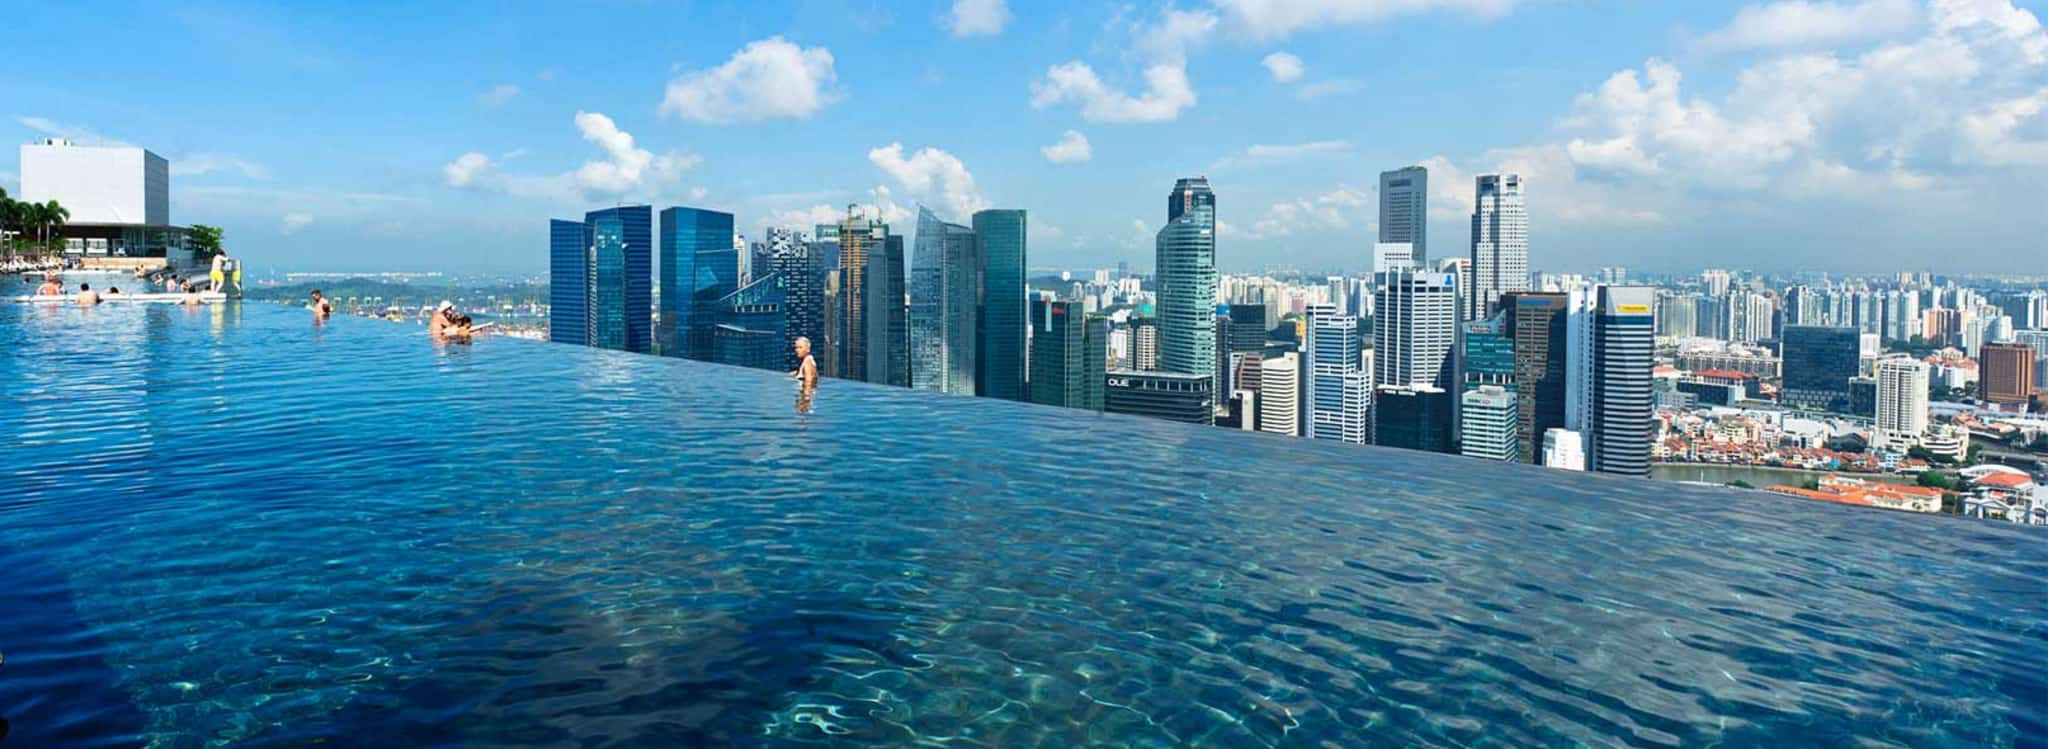 Marina Bay Sands Infinity Pool - the world's largest and highest infinity pool. TravelingWellForLess.com